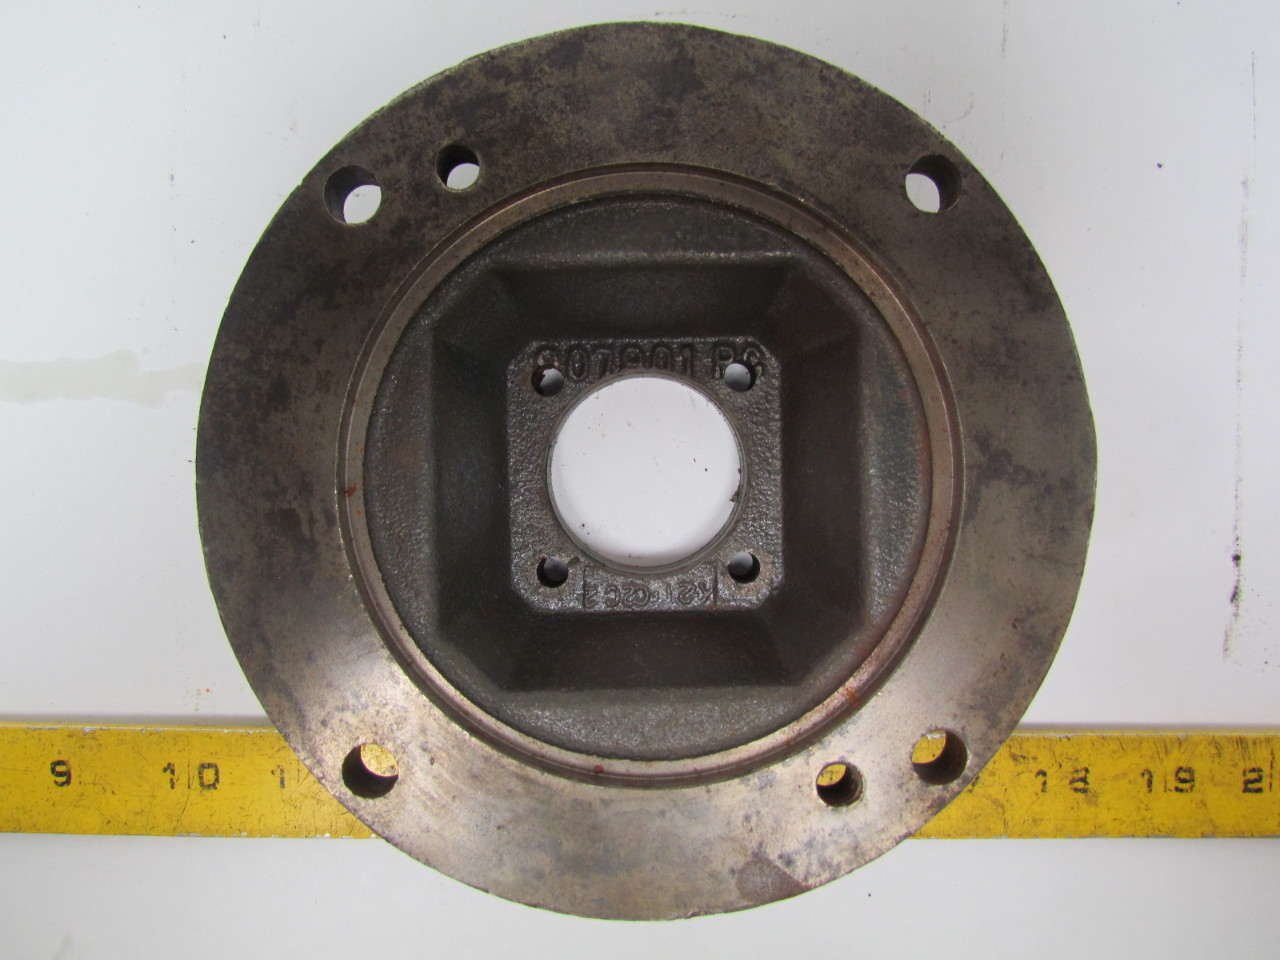 Gear reducer input flange adapter c face quot opening